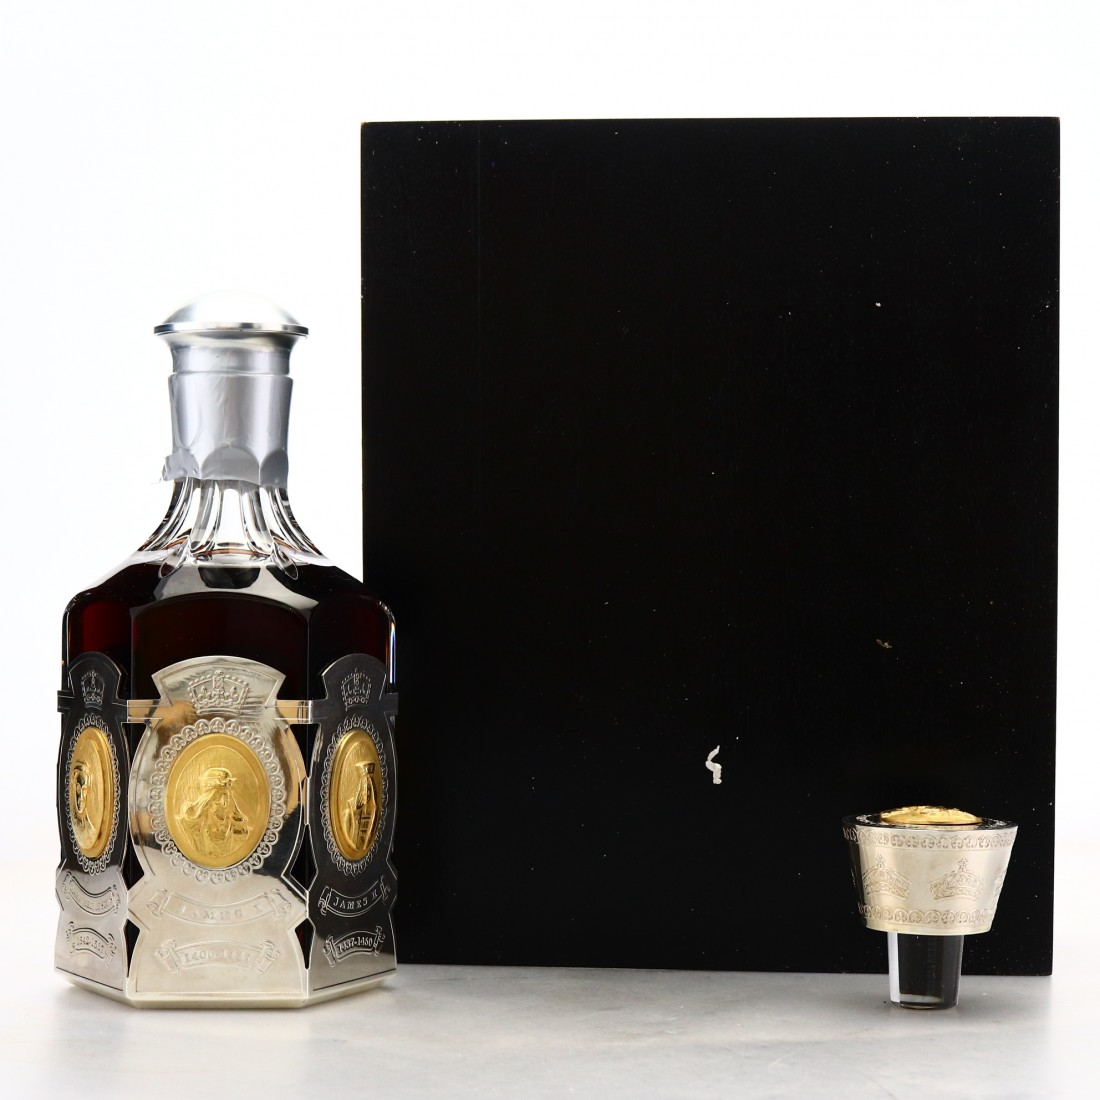 Glenfiddich 1964 Hart Brothers 40 Year Old Dynasty Decanter